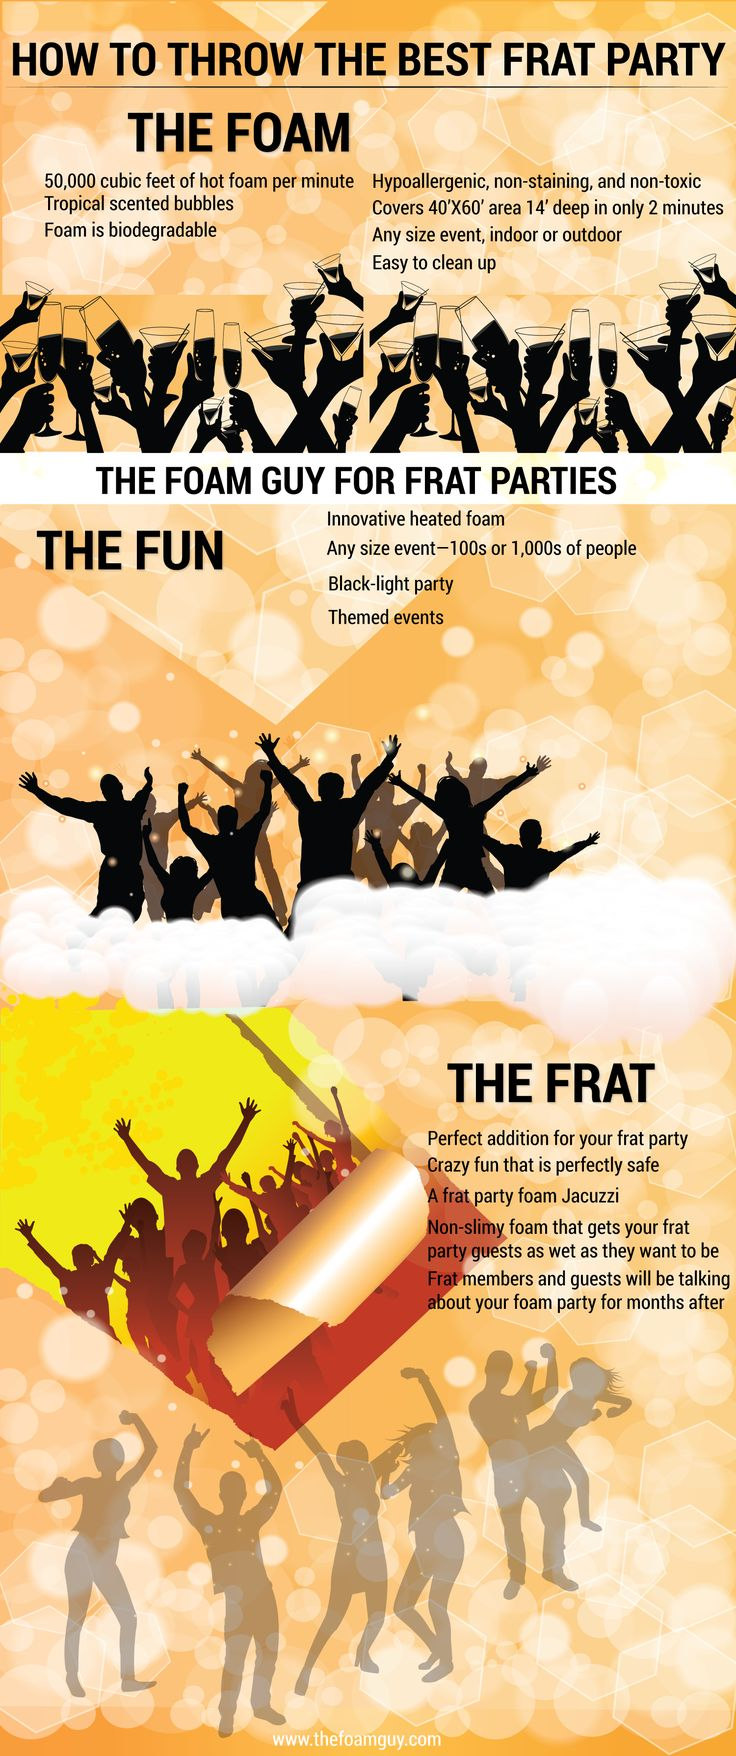 20 beste ideen over corps feestjes op pinterest toga party if you are wondering how to throw the best frat party then bring in the foam guy and popularize the event in your college the inventive heated foam would monicamarmolfo Images